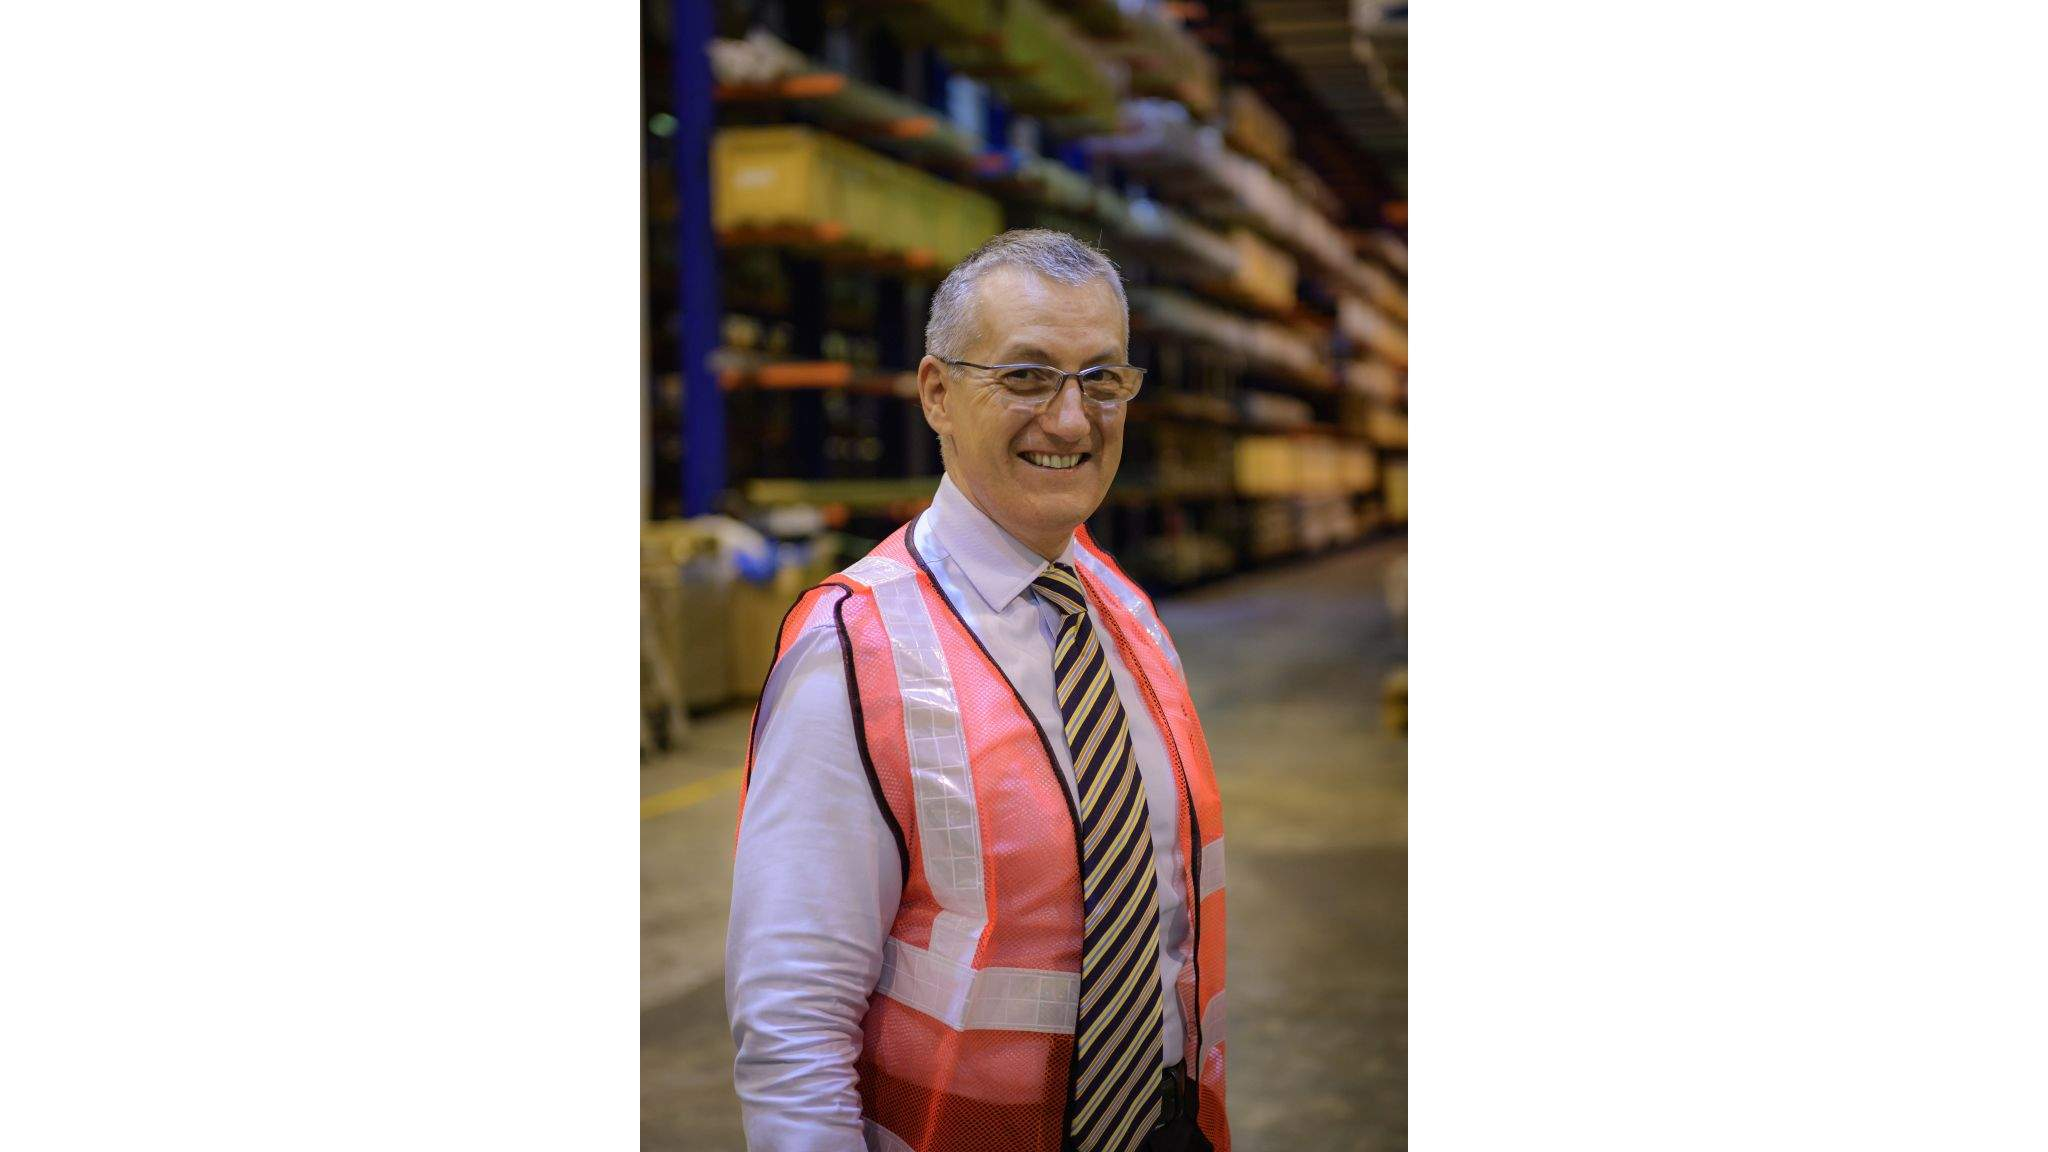 Frank Stadus, Managing Director Air & Sea Logistics Singapore, at DACHSER warehouse.